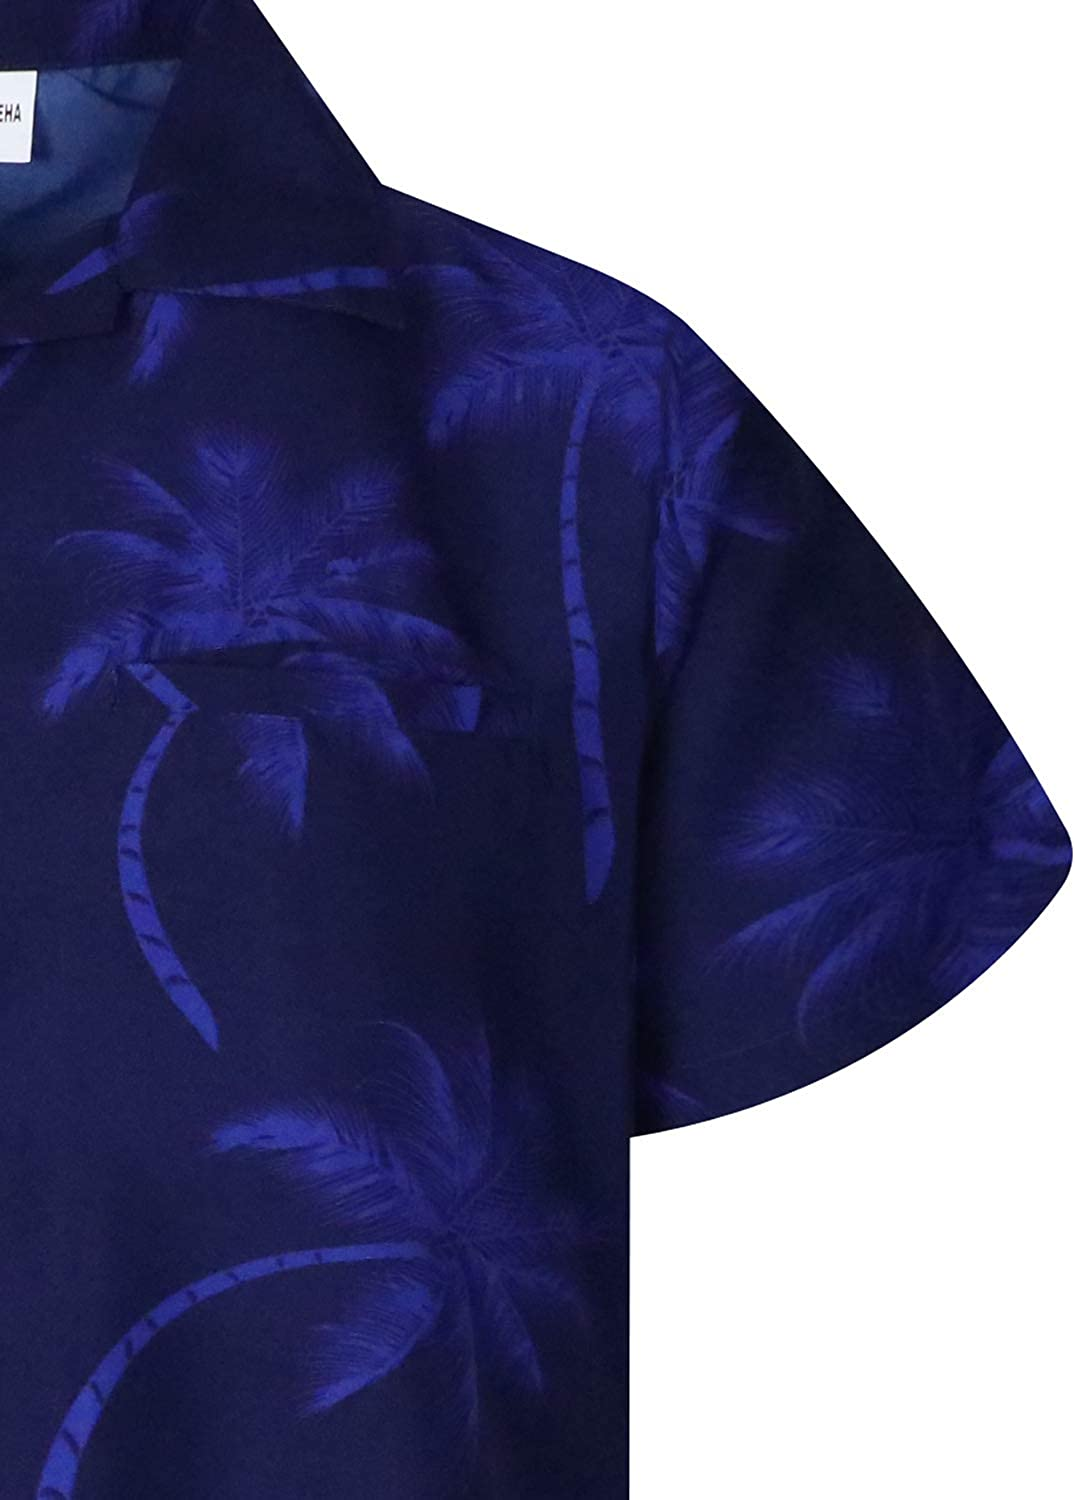 King Kameha Hawaiian Shirt for Men Funky Casual Button Down Very Loud Shortsleeve Unisex Palmshadow